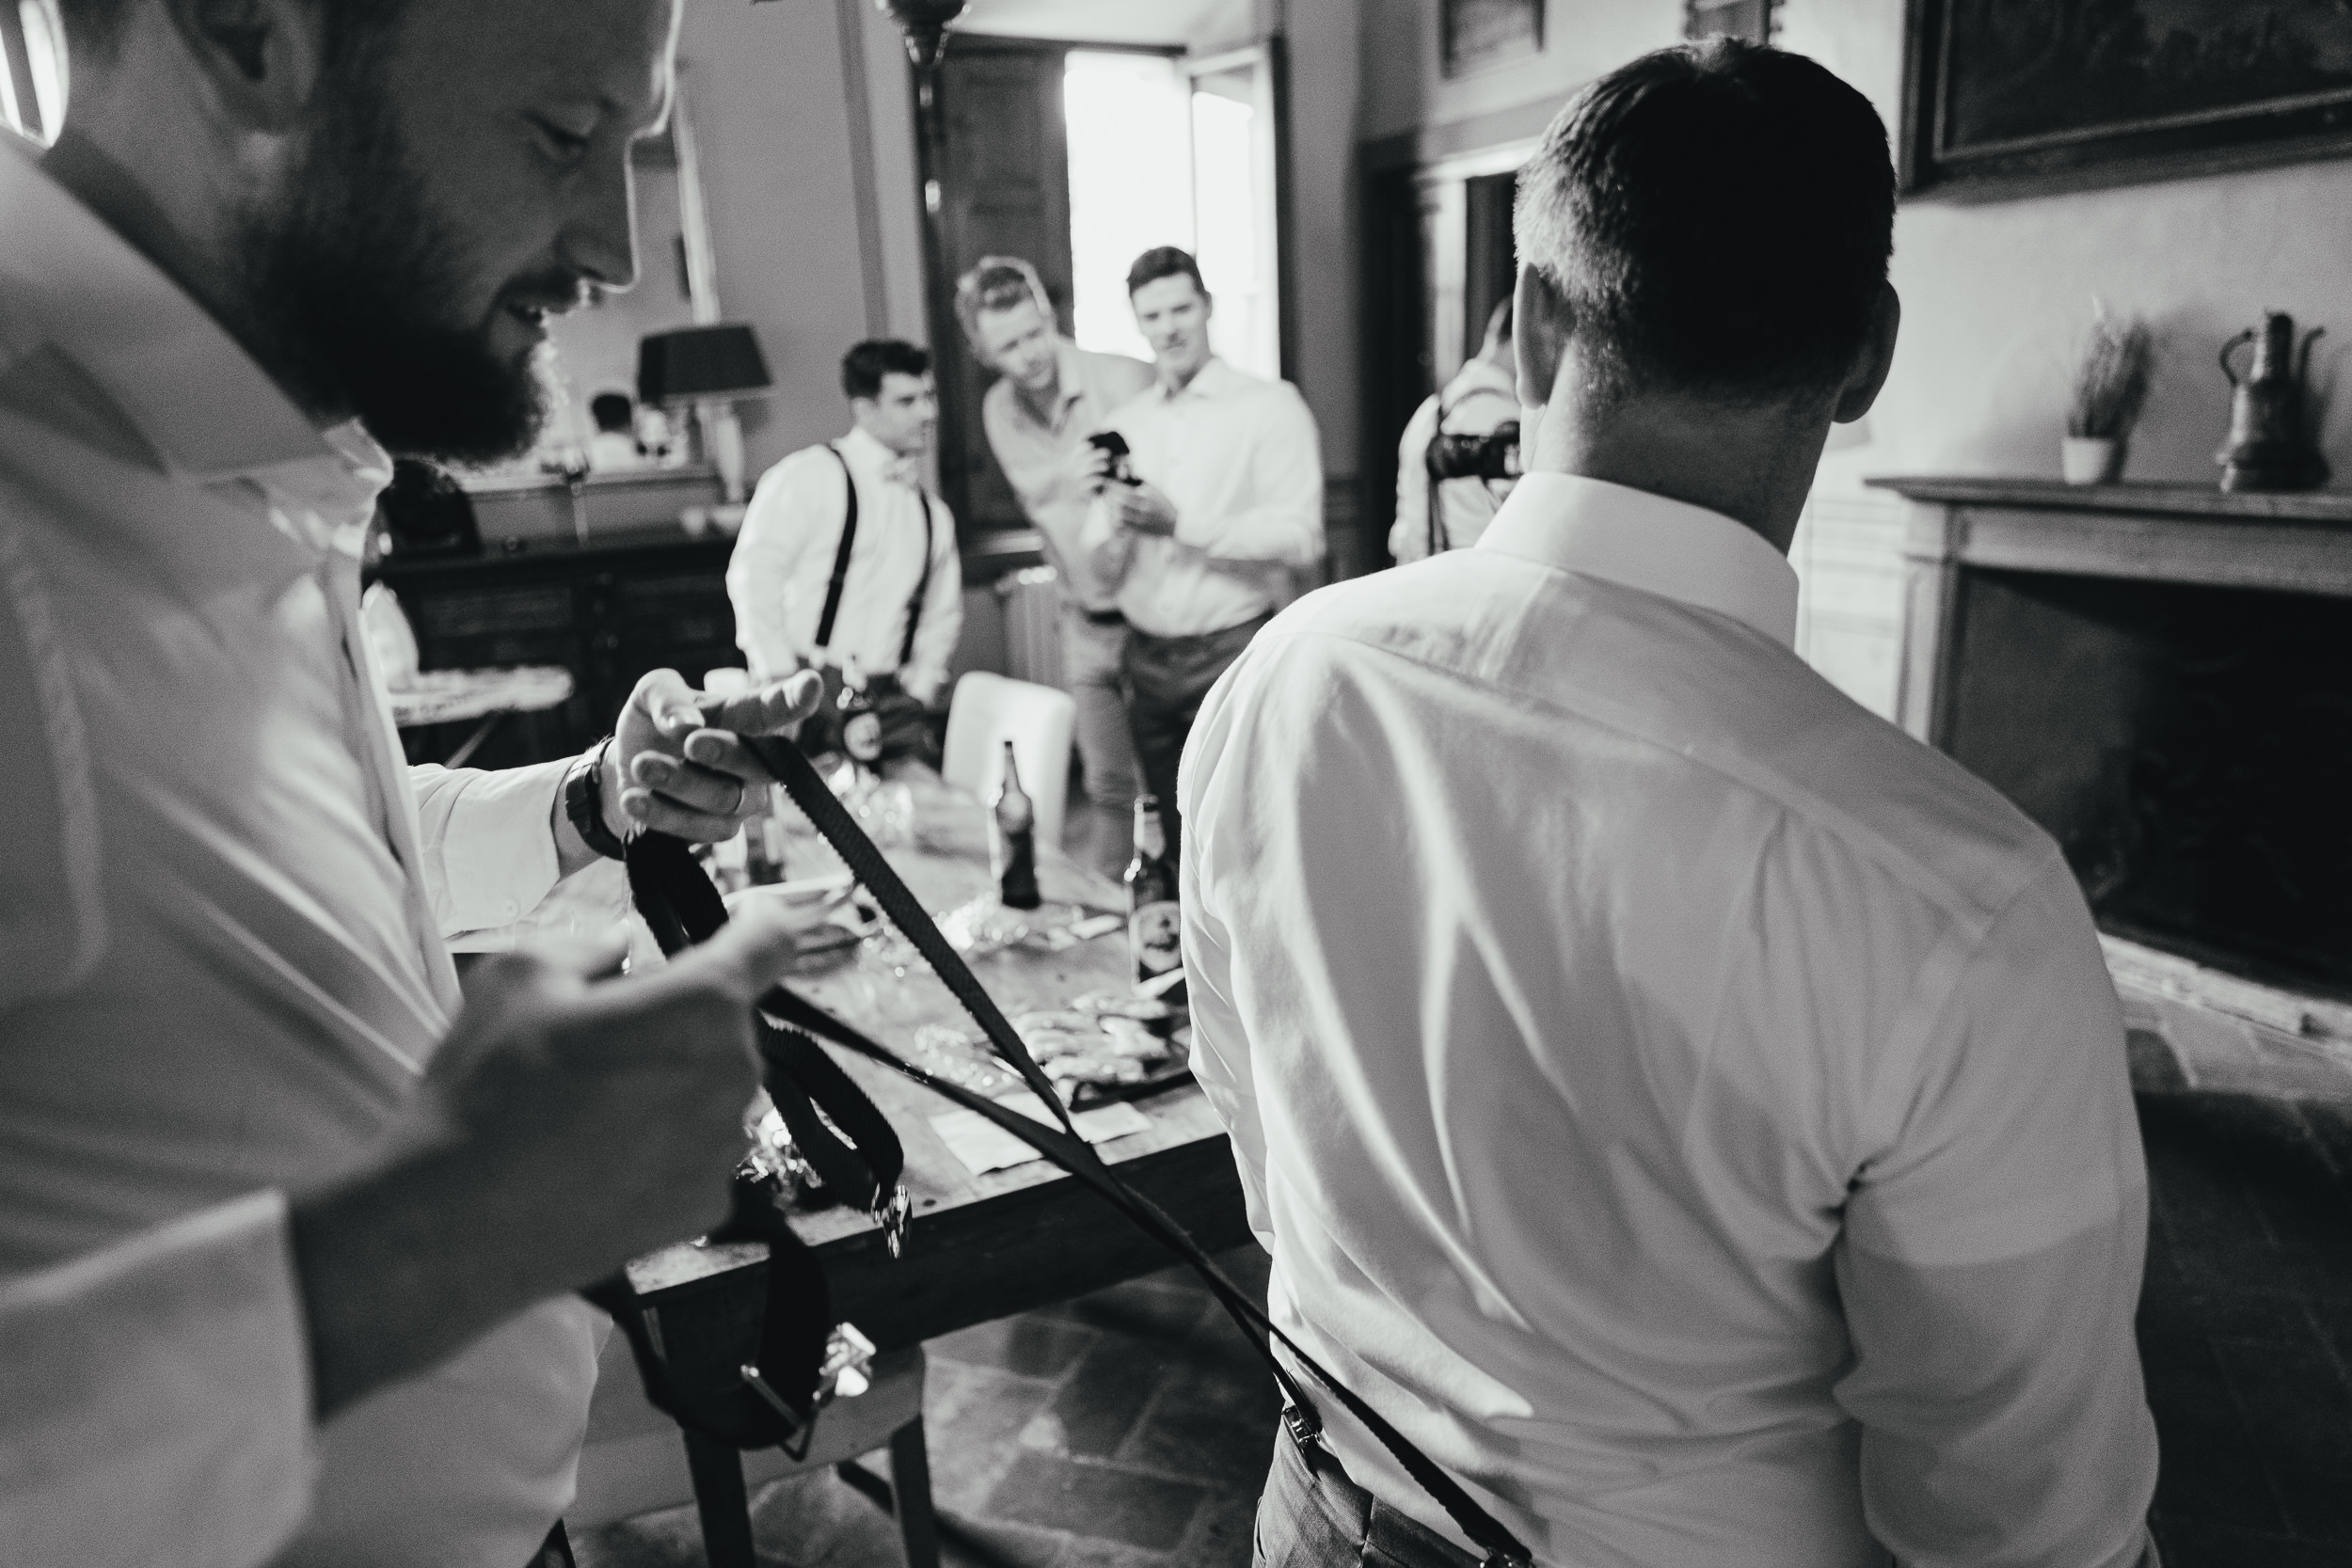 Tuscan Villa Wedding - the Groom getting dressed